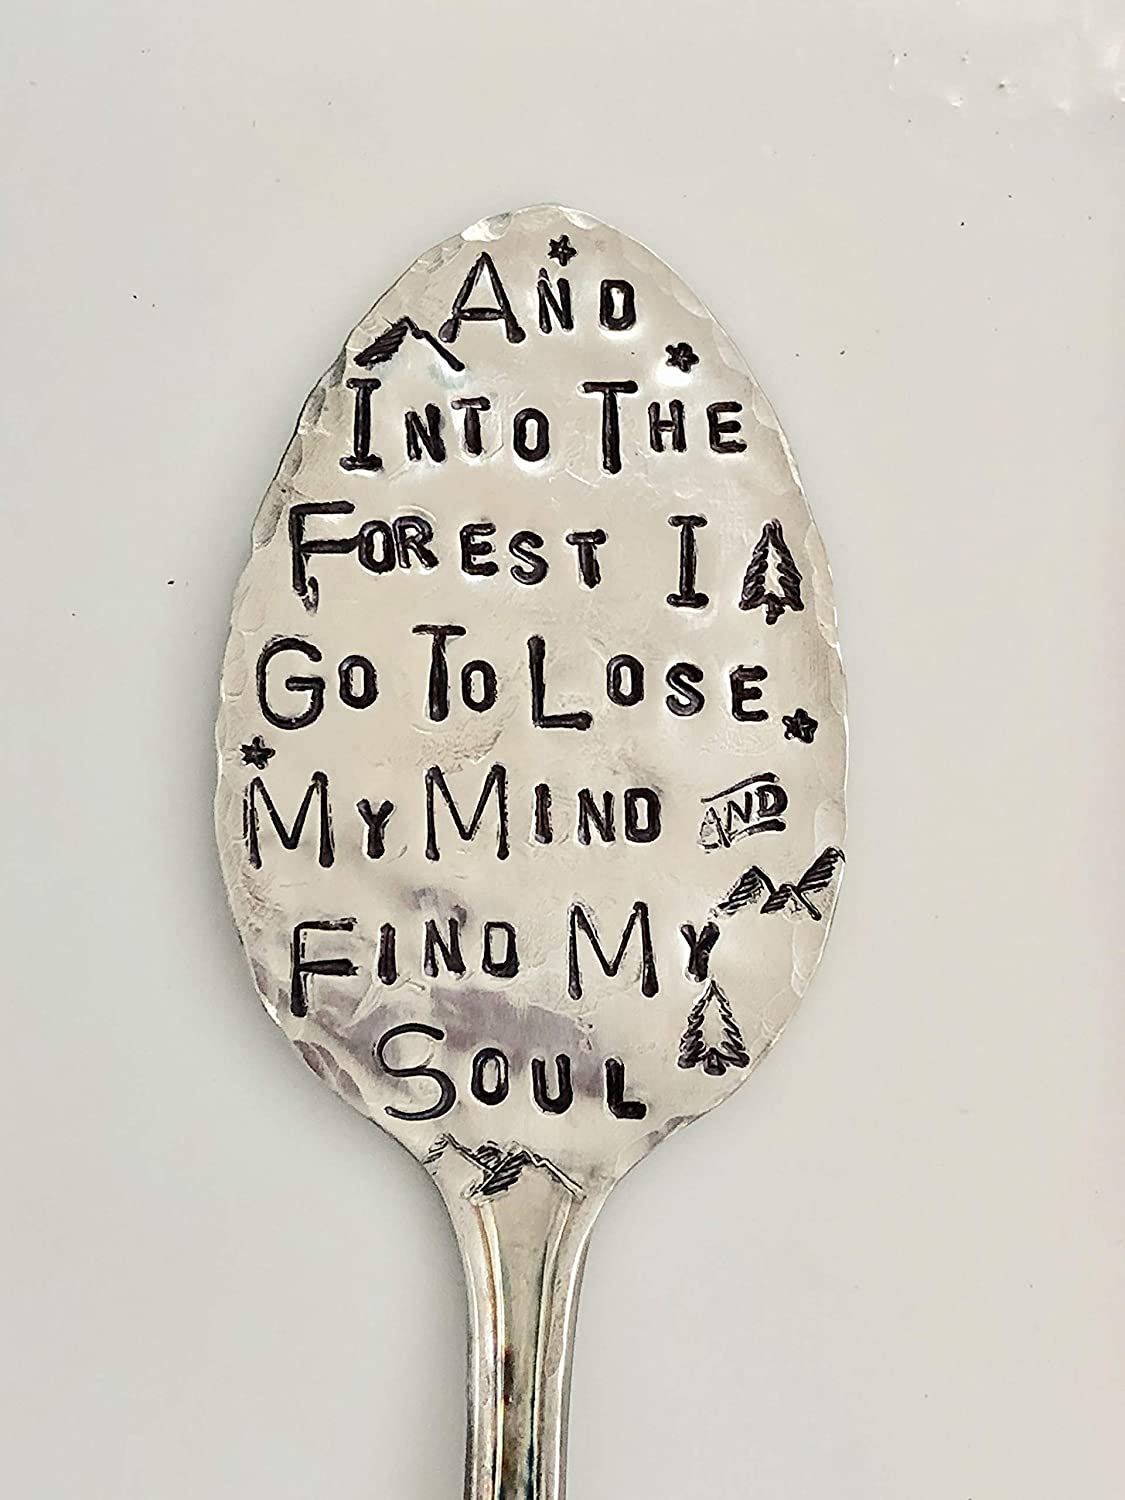 Garden Marker Spoon Herbs or Flowers hand stamped for Plants John Muir quote AND INTO THE FOREST I GO TO LOSE MY MIND AND FIND MY SOUL